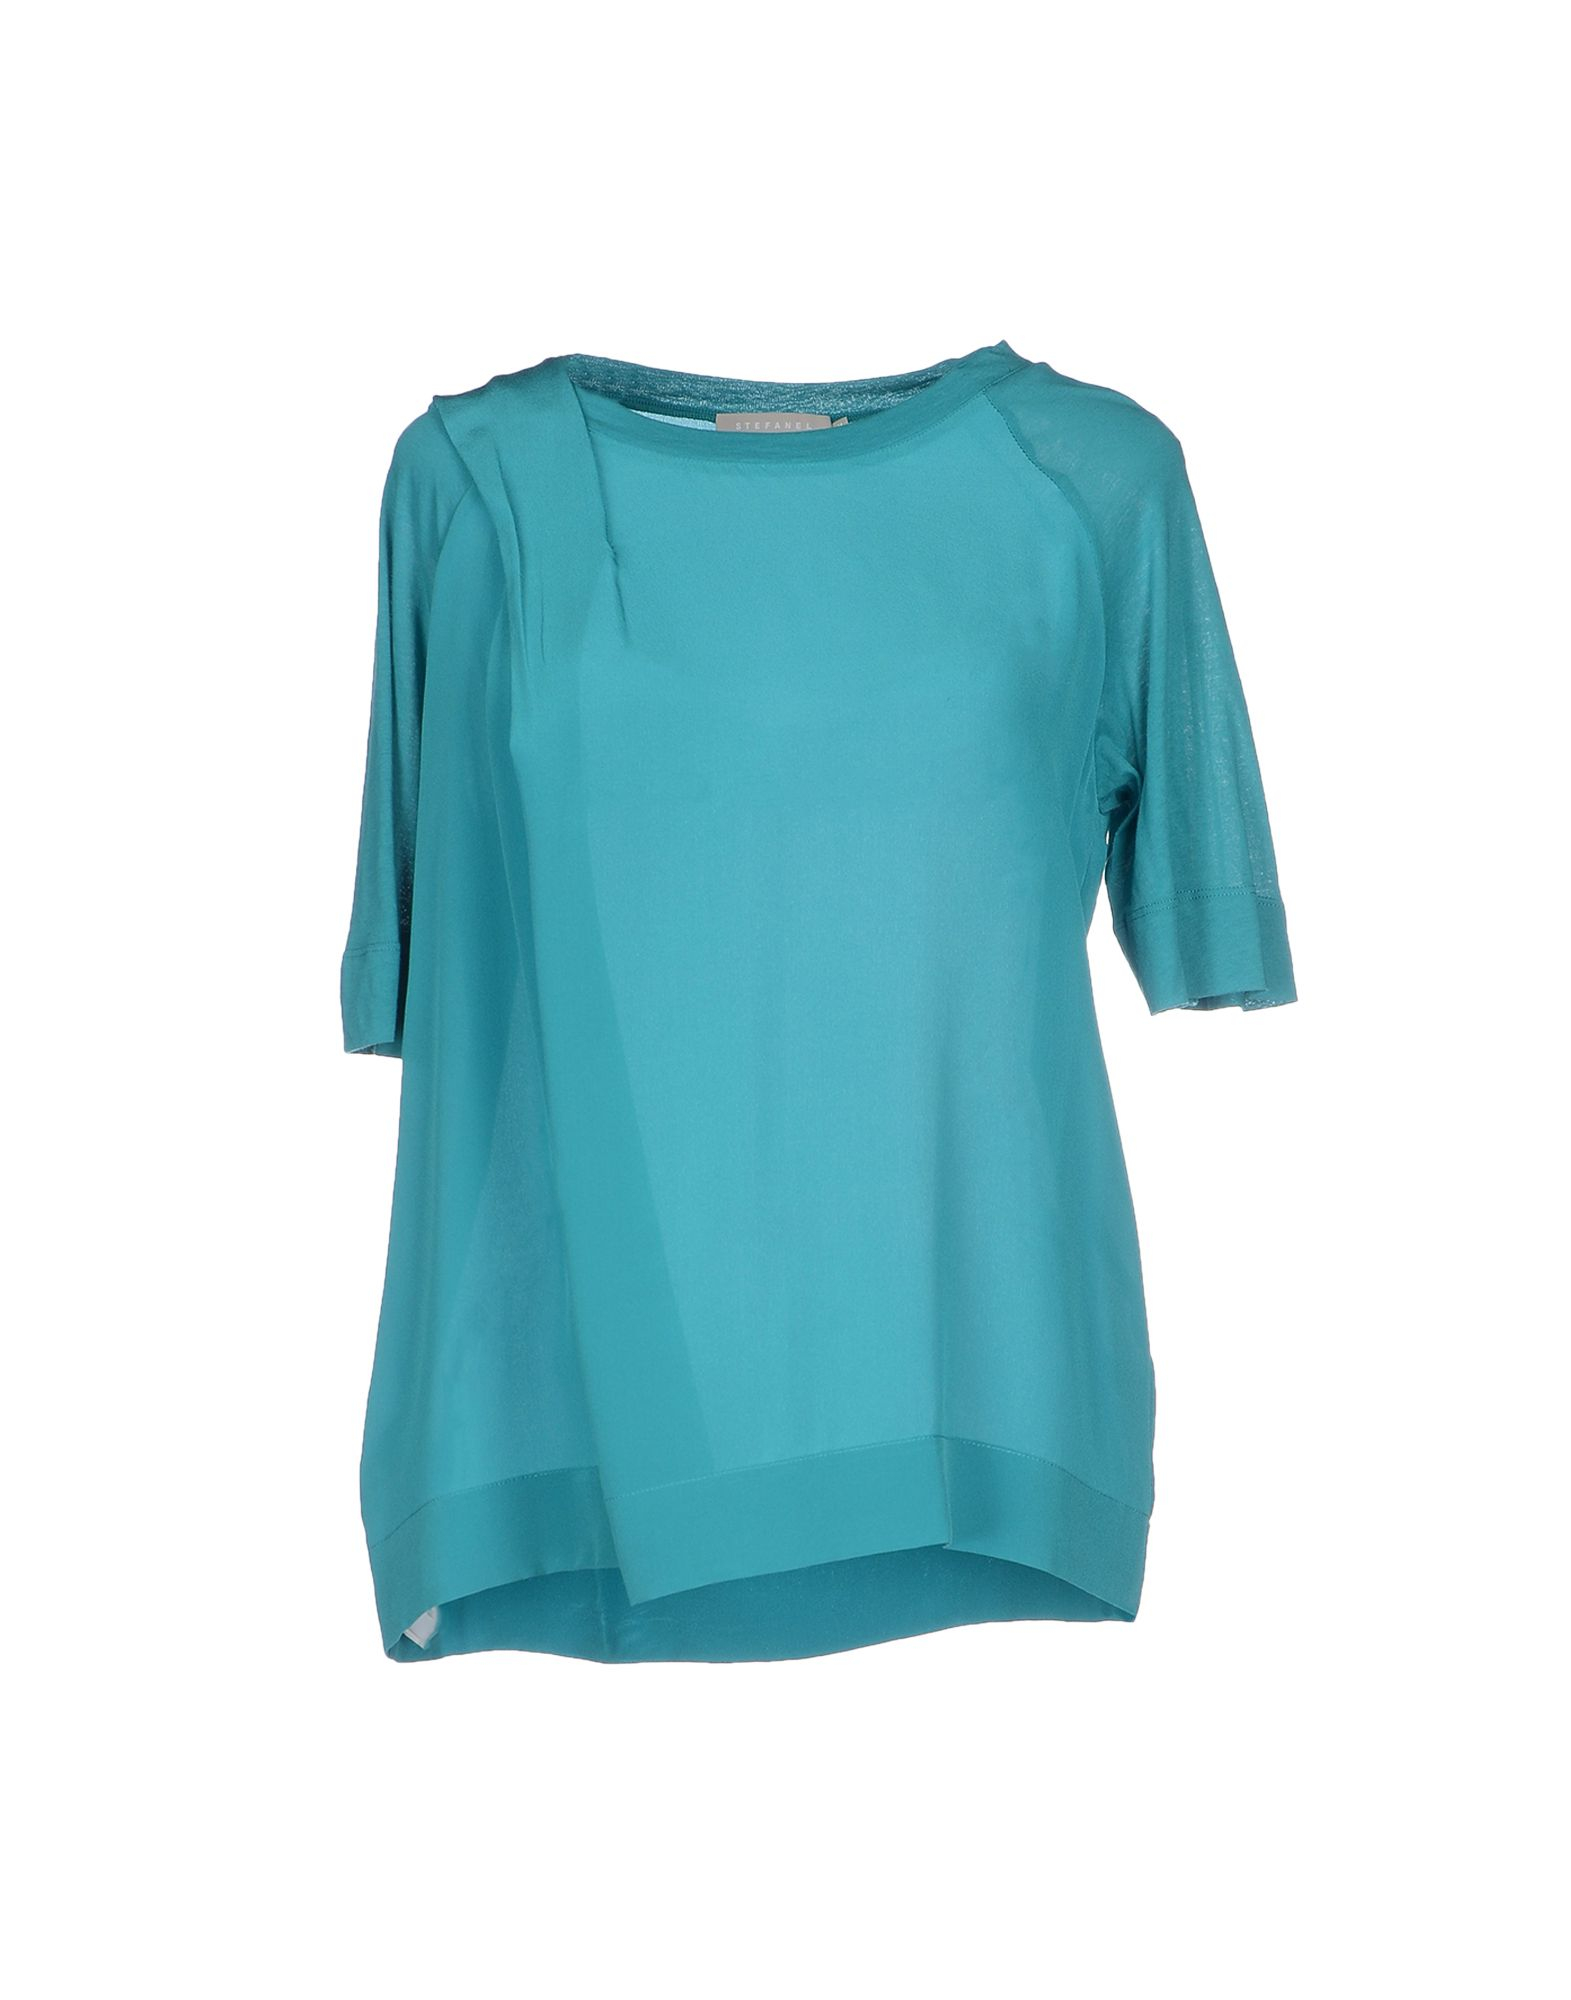 Turquoise Womens Blouses Collar Blouses